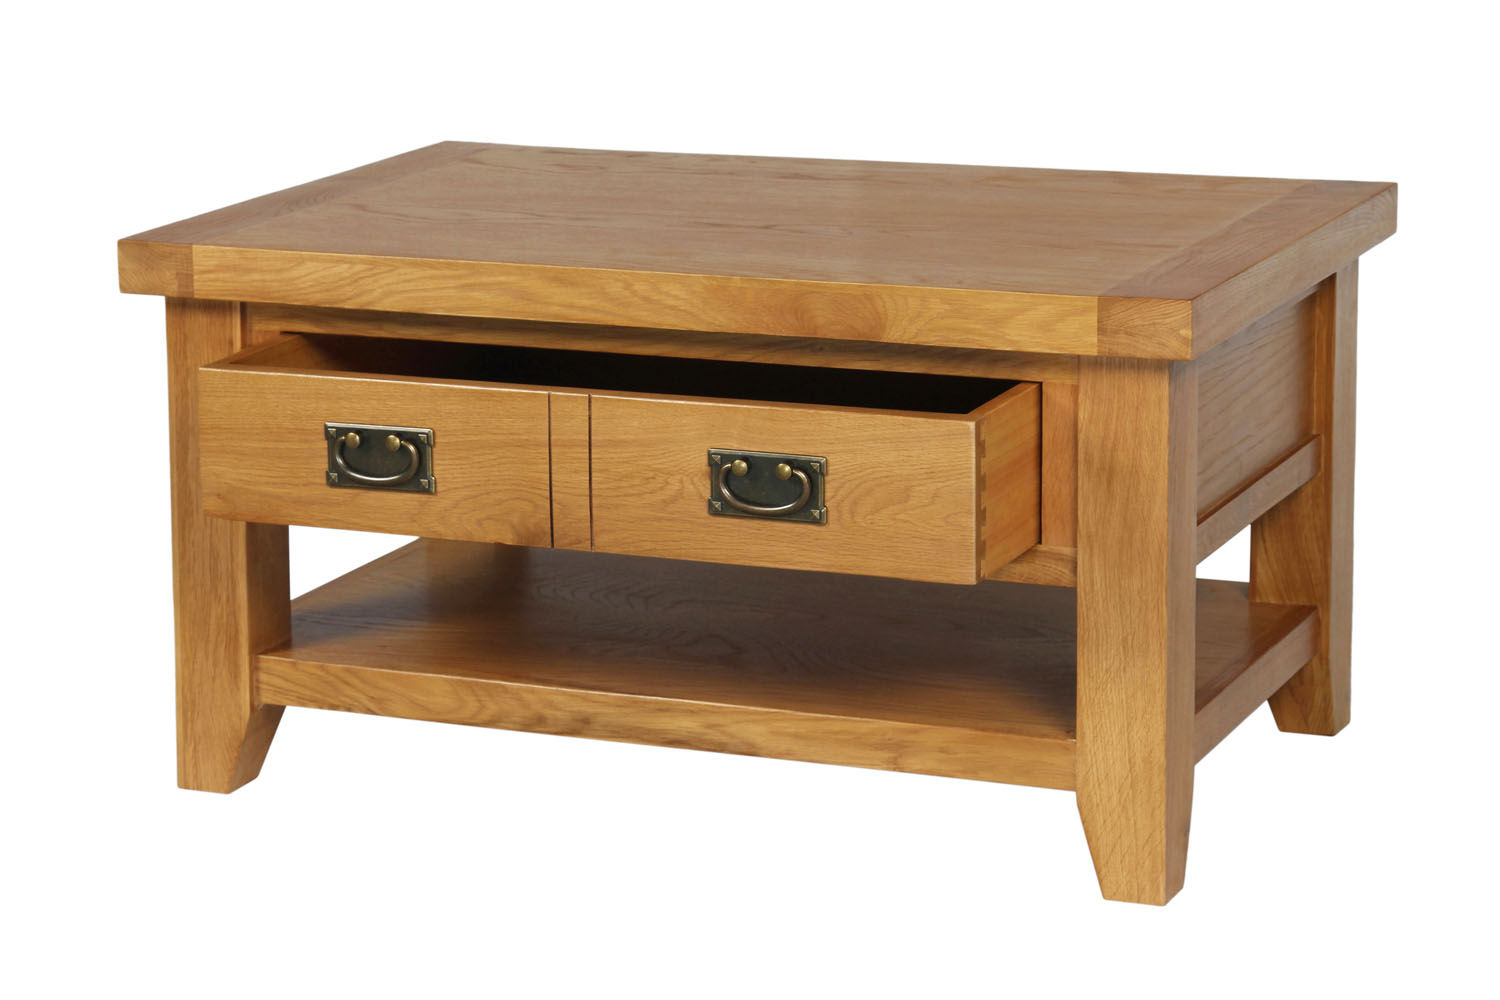 Country Oak Coffee Table with Drawer & Shelf - Free Delivery | Top ...